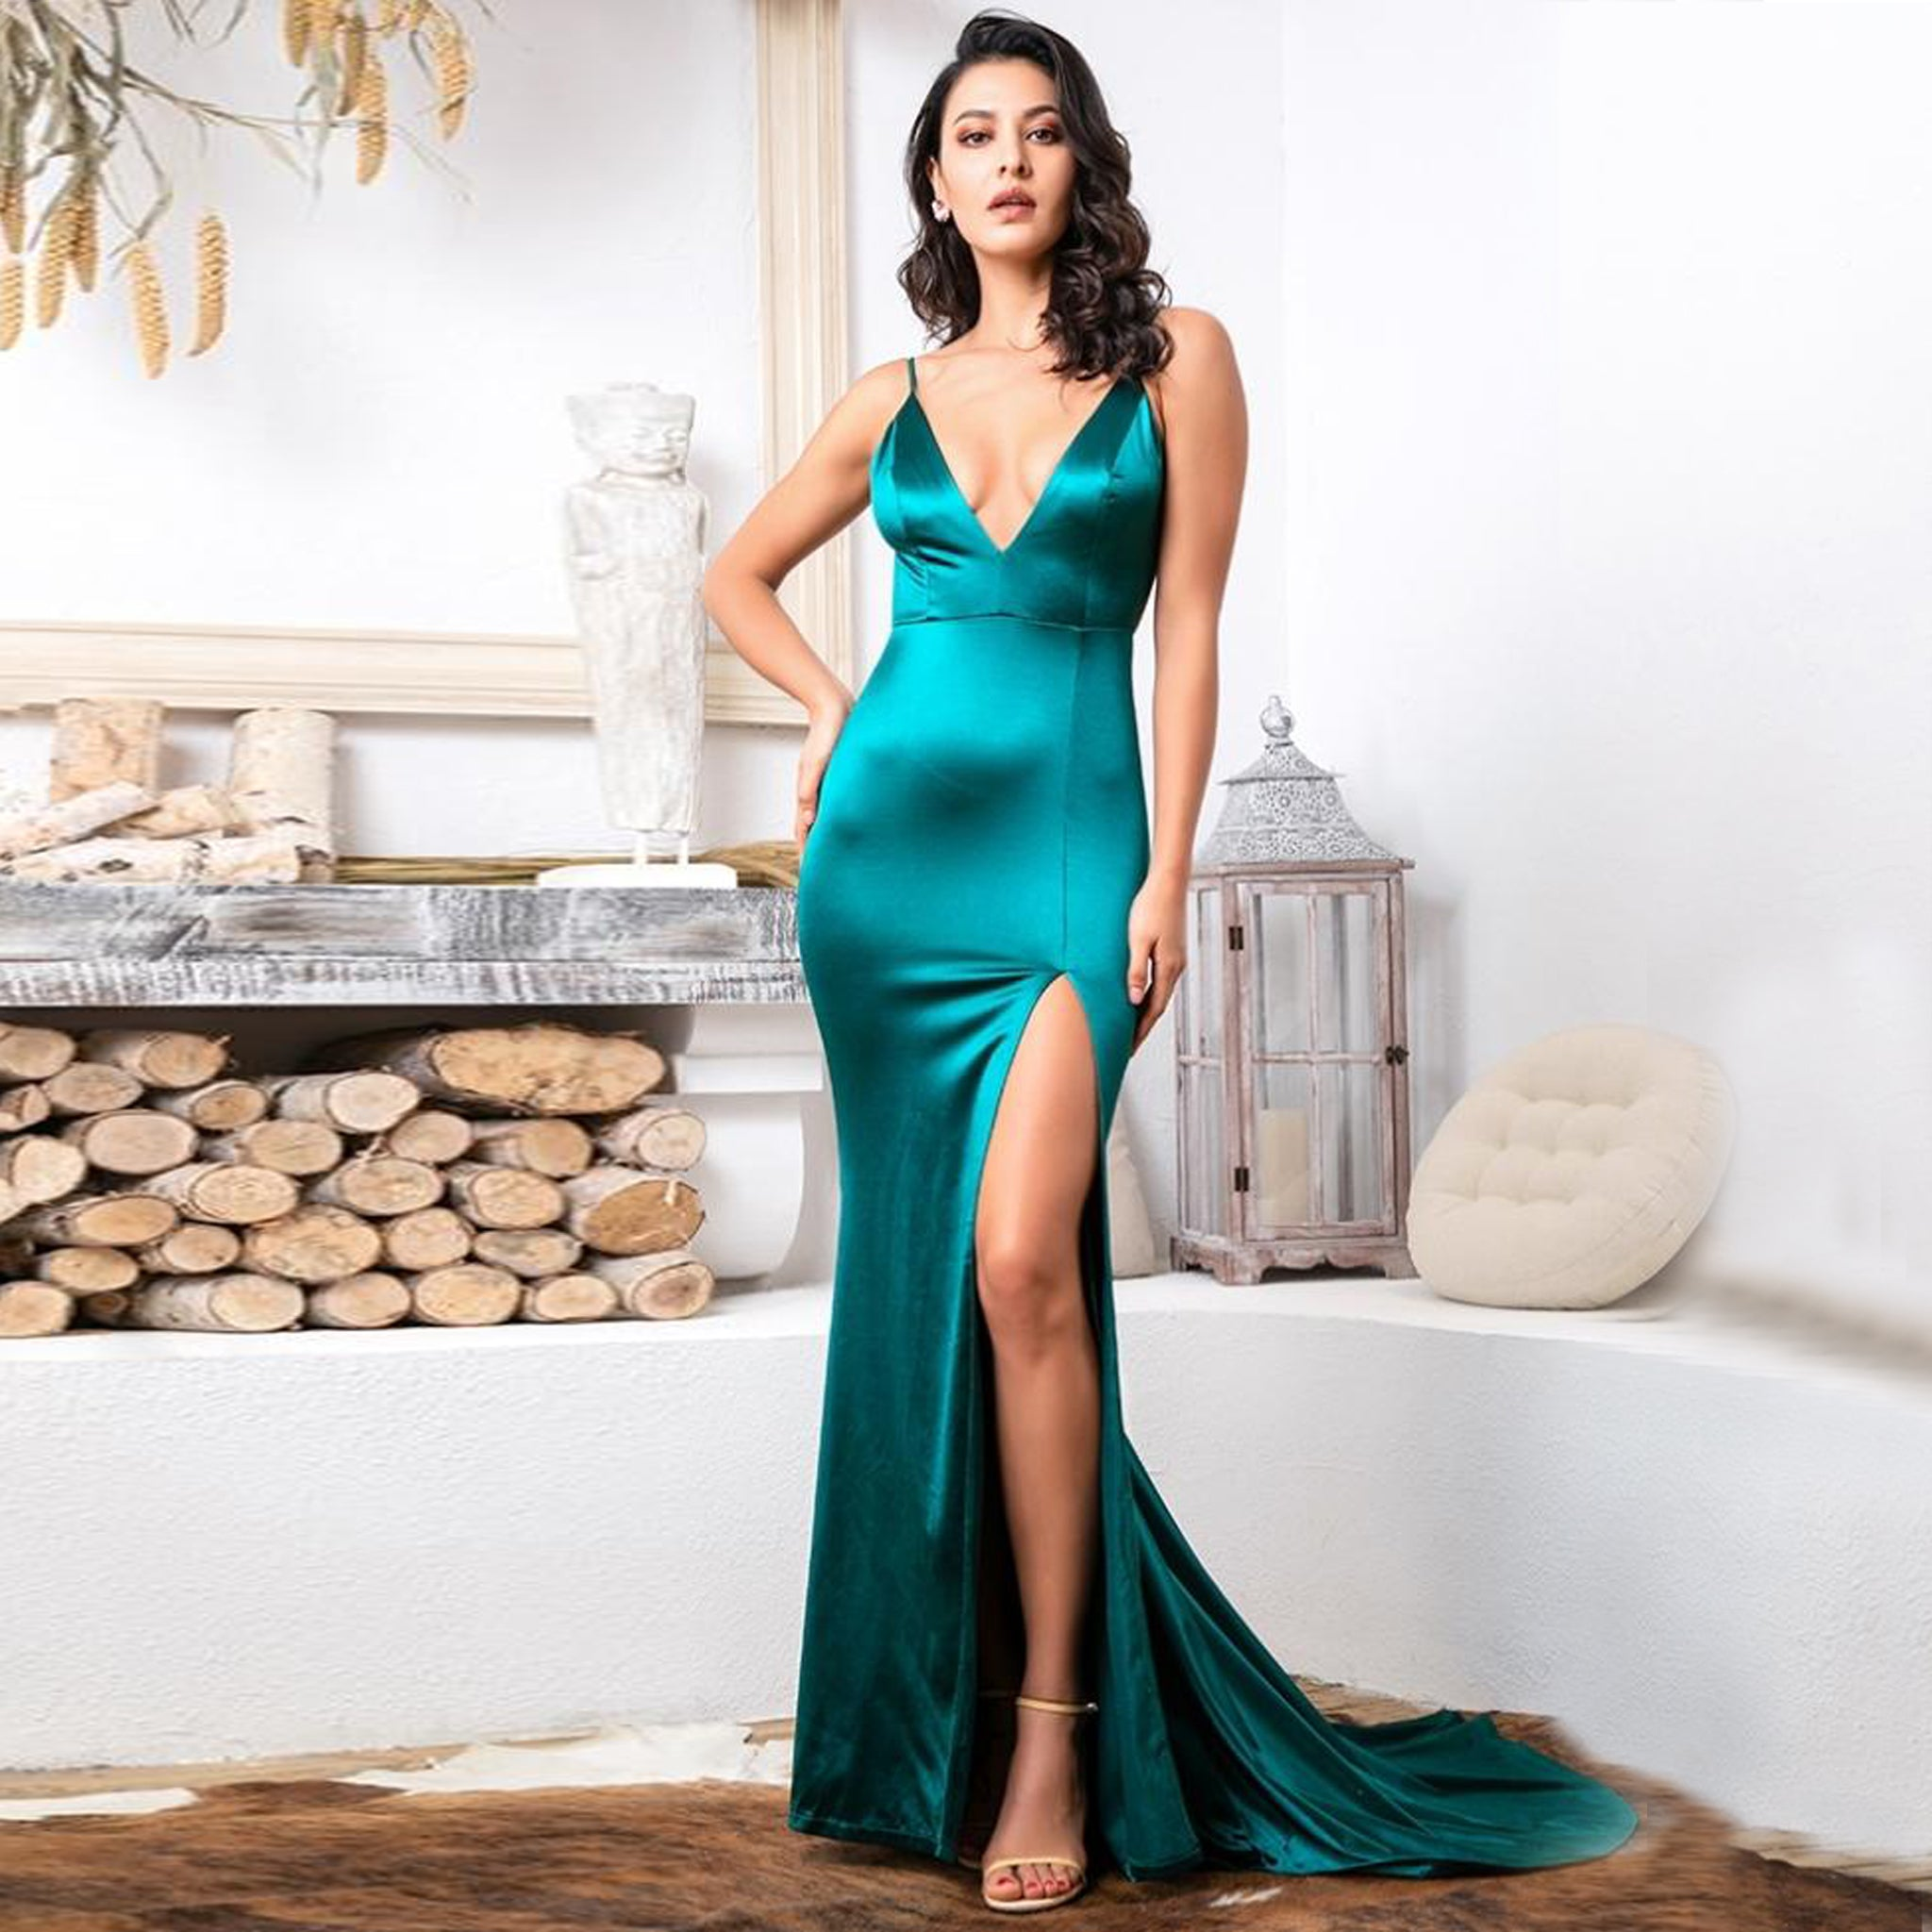 Serafina Gown- Emerald - Top Glam Shop